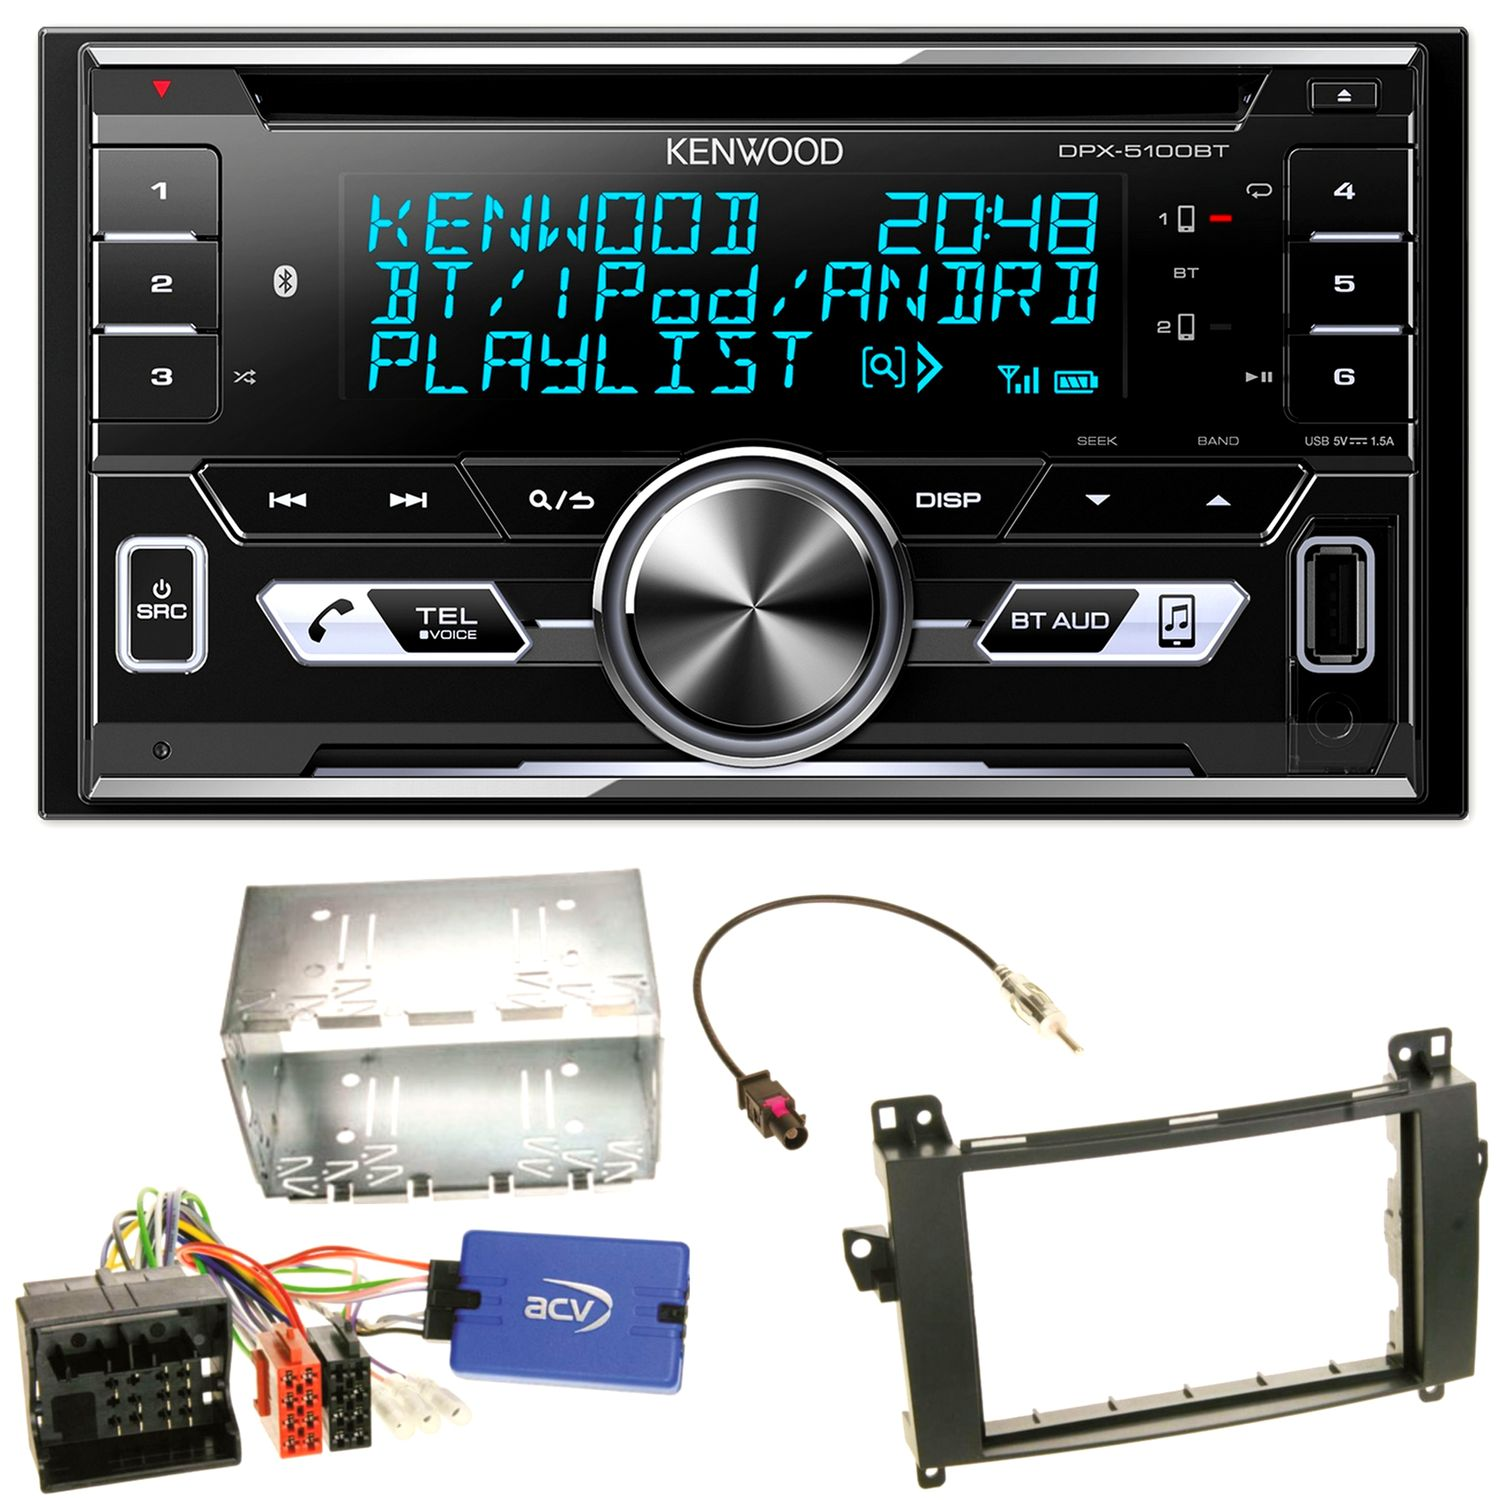 Super Kenwood DPX-5100BT Autoradio iPhone Einbauset für Mercedes A W169 VX-93